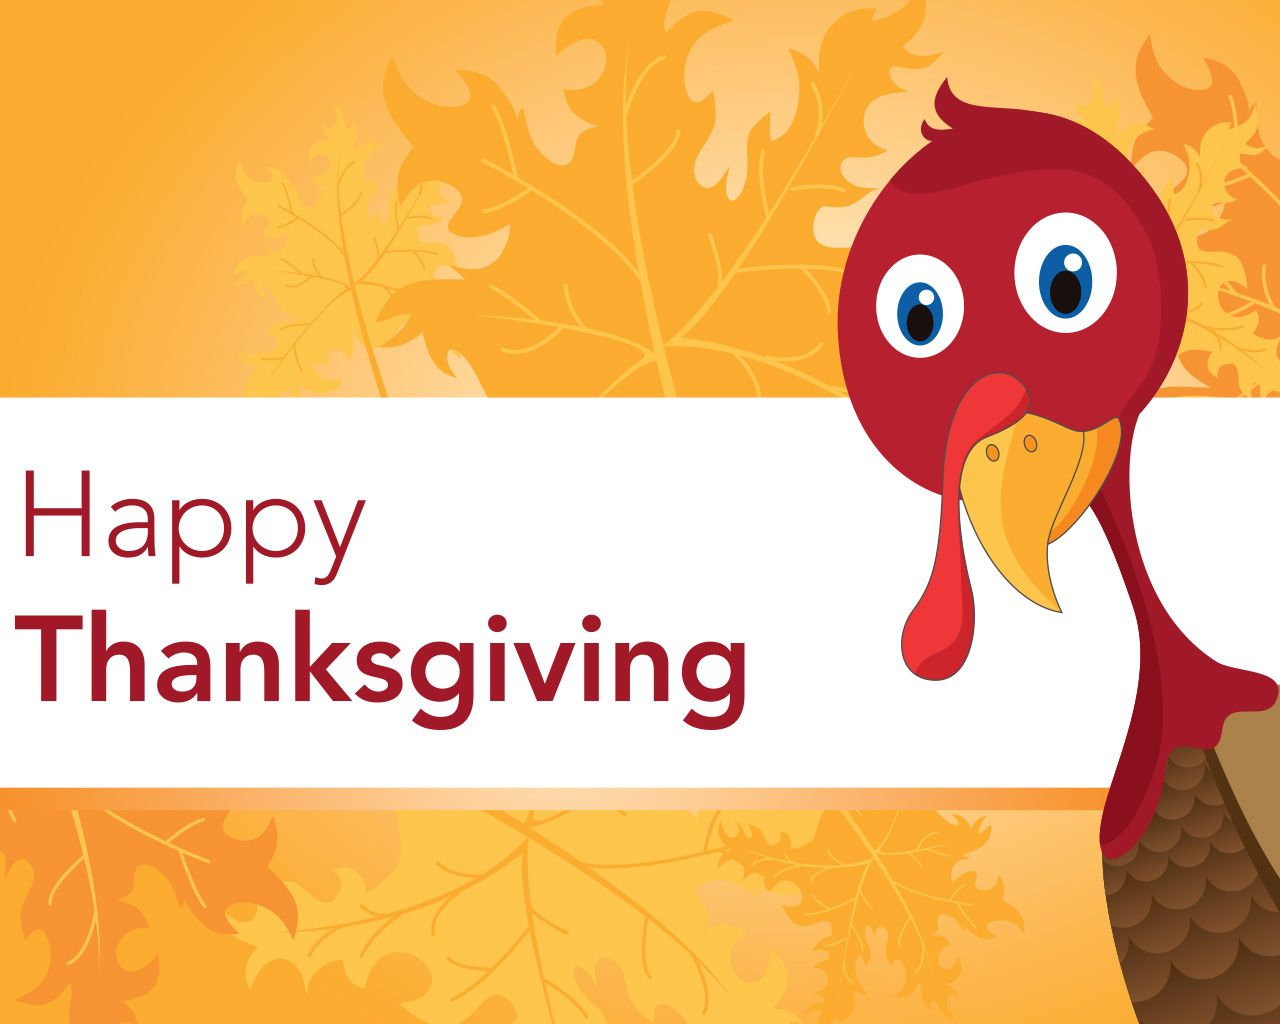 Thanksgiving Turkey^] HD Image & Wallpapers for Pinterest